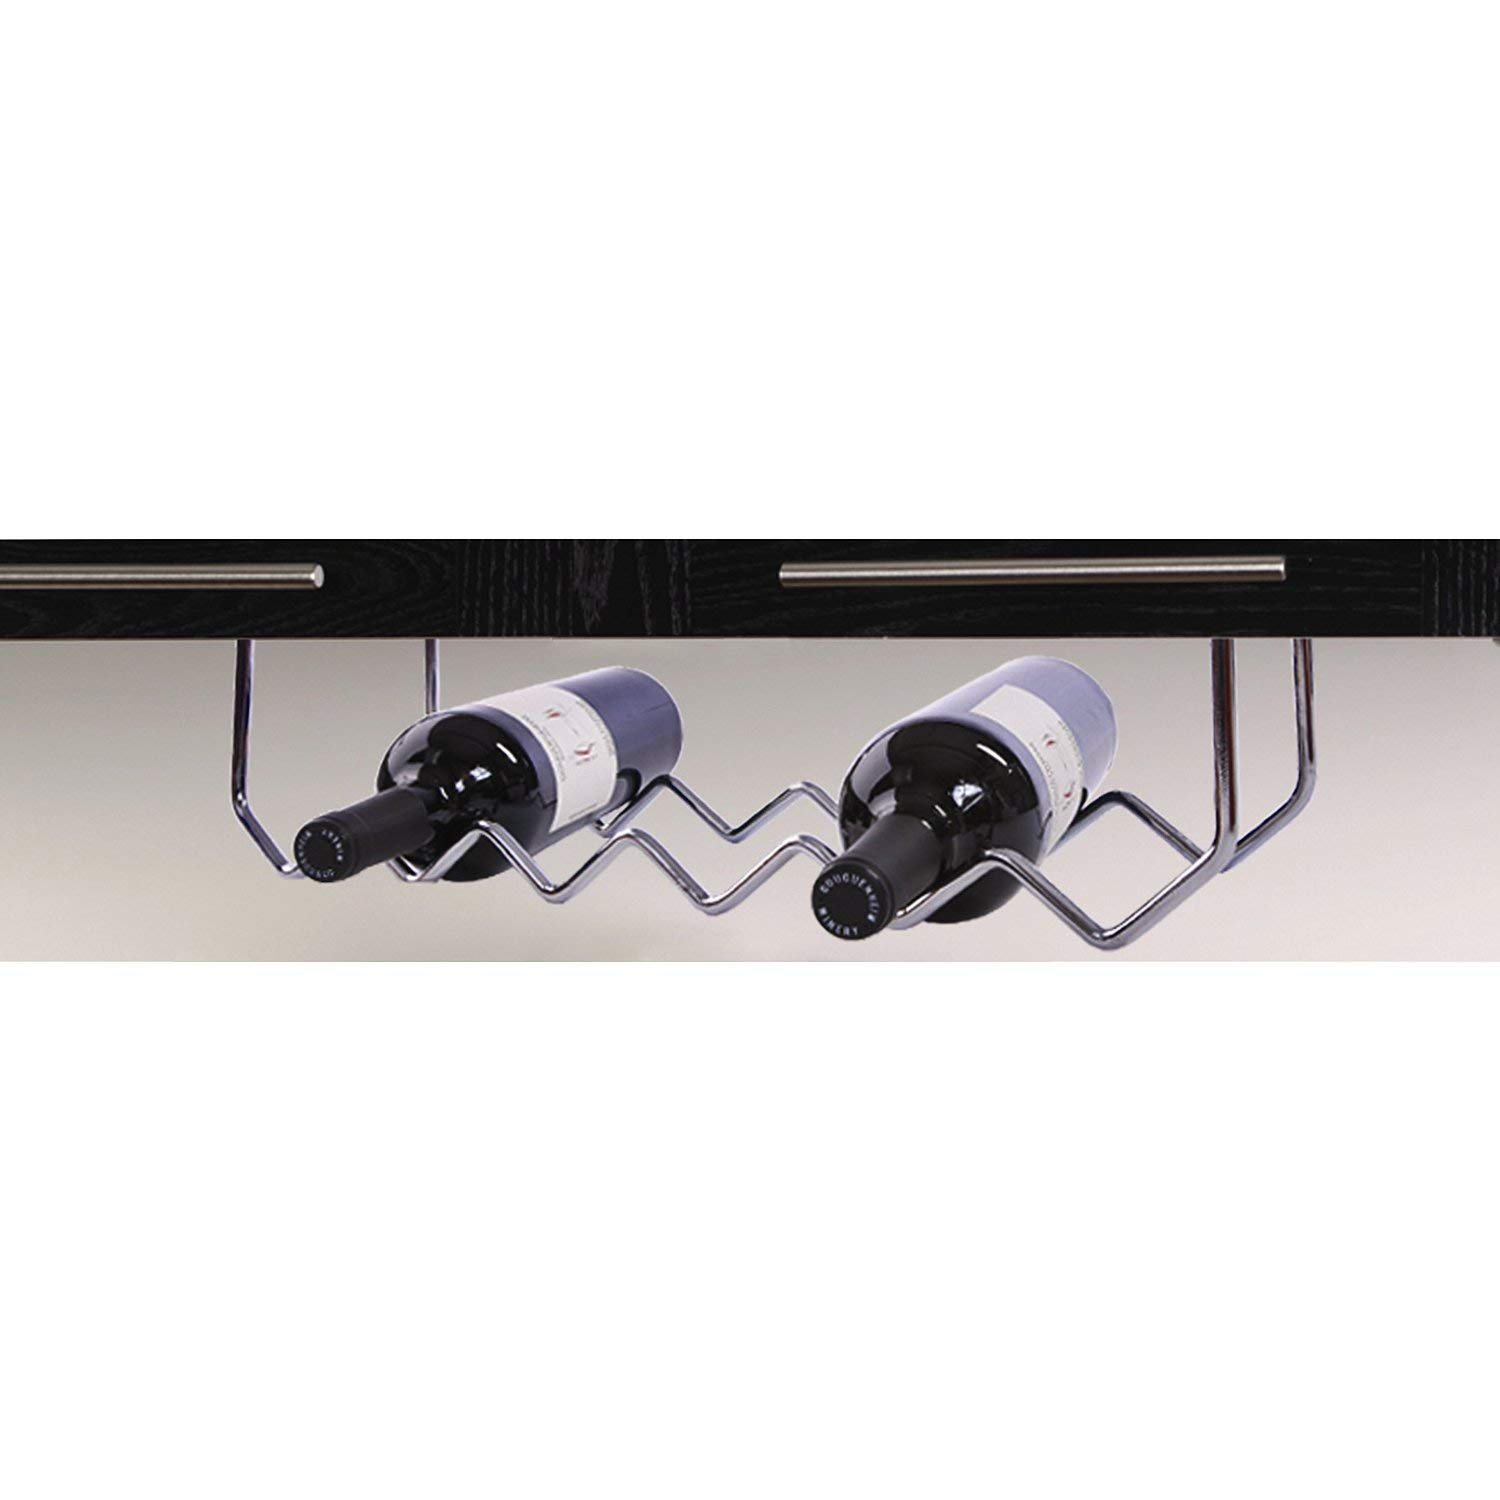 ItsUseful UH-BH184 Under Cabinet Wine Bottle Rack -Chrome Six Bottle Wine Rack